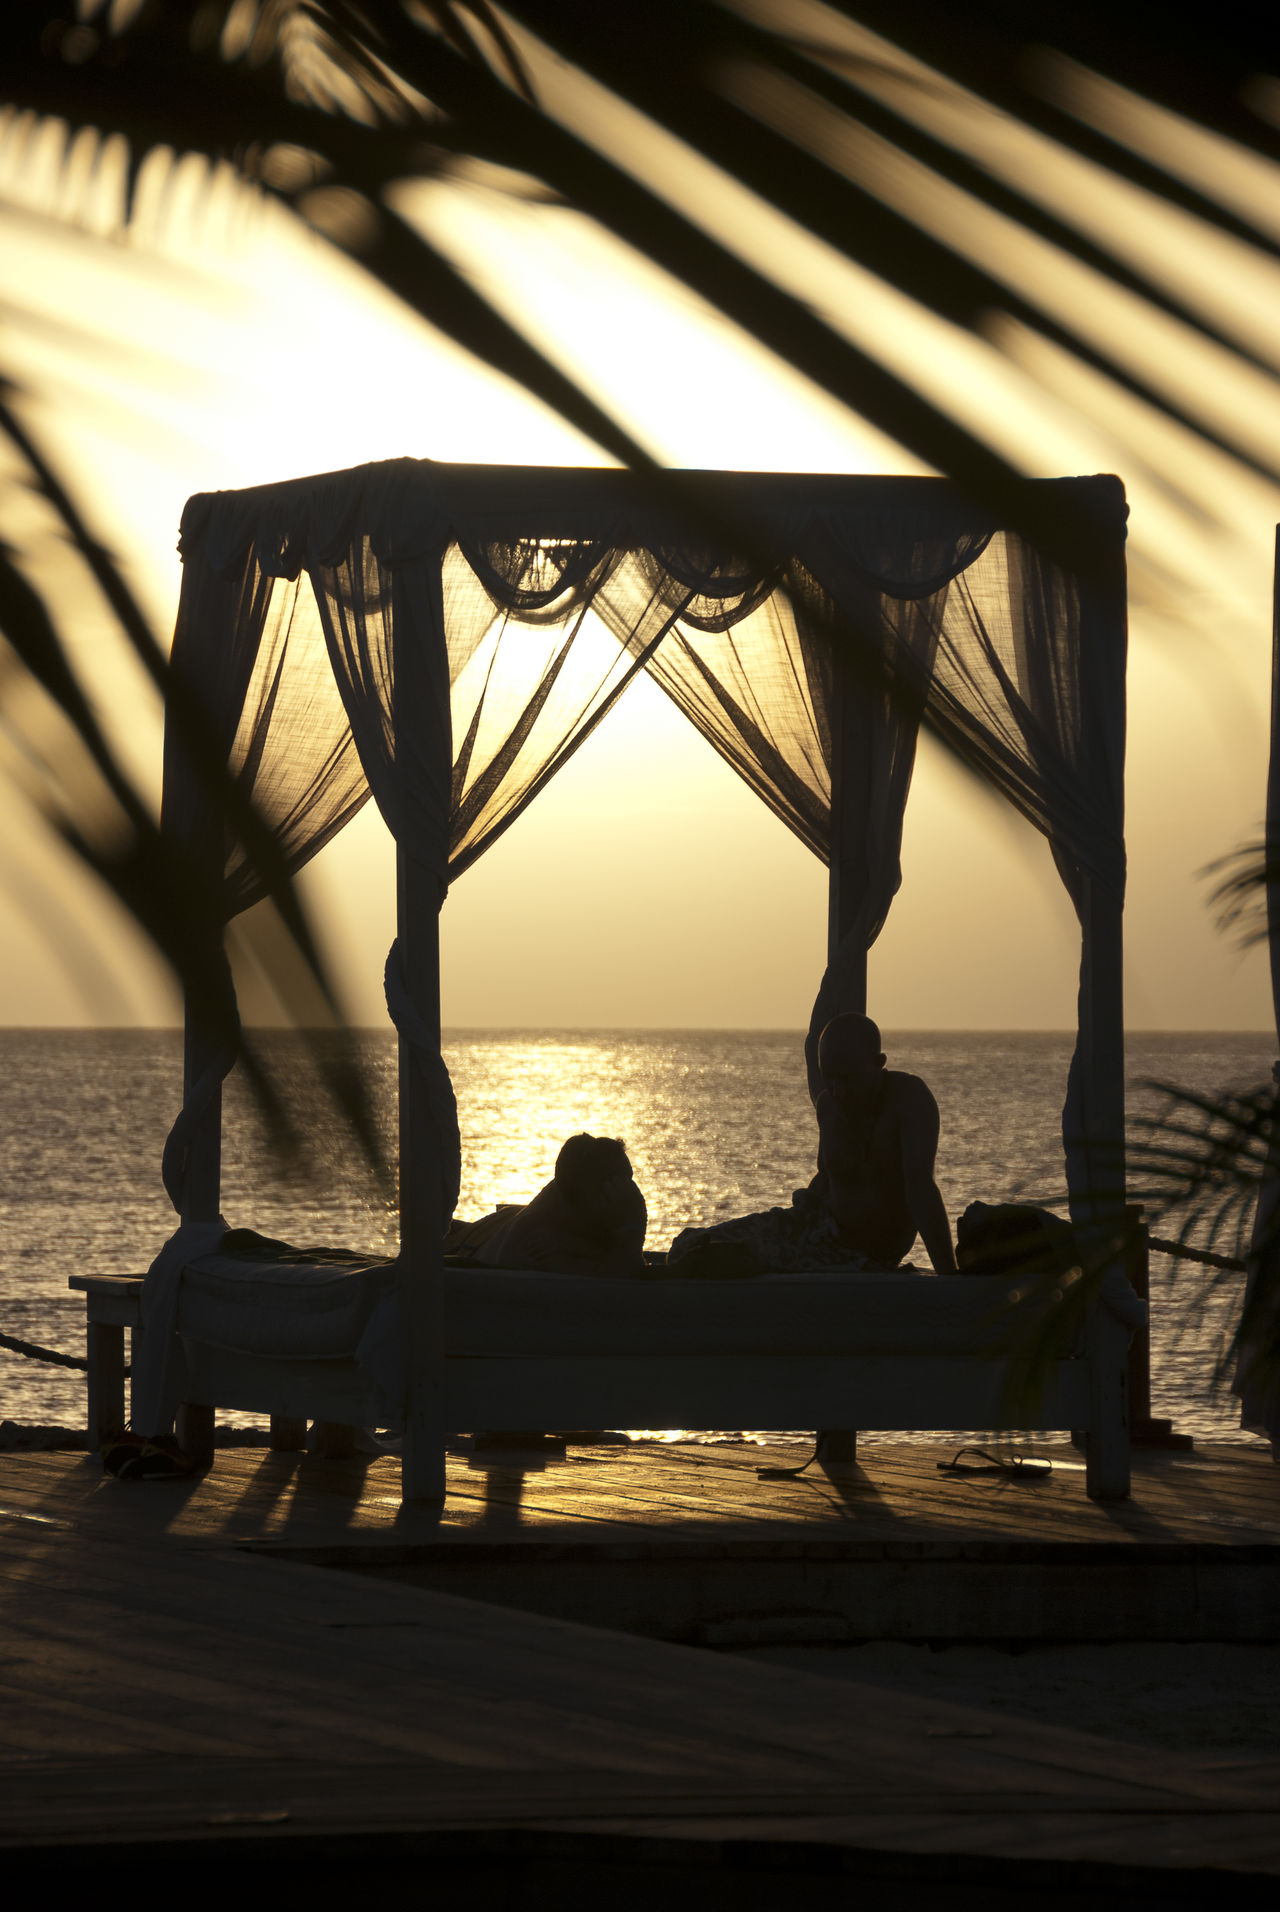 Relaxing at the caribbean sea. Caribbean Sea Caribbean Life EyeEmNewHere Holiday Palm Tree Relaxing Baech Beauty In Nature Bert Driebe Caribbean Day Divan BedHorizon Over Water Outdoors Relax Scenics Sea Silhouette Sky Sun Lounger Sunlight Sunset Tranquility Water